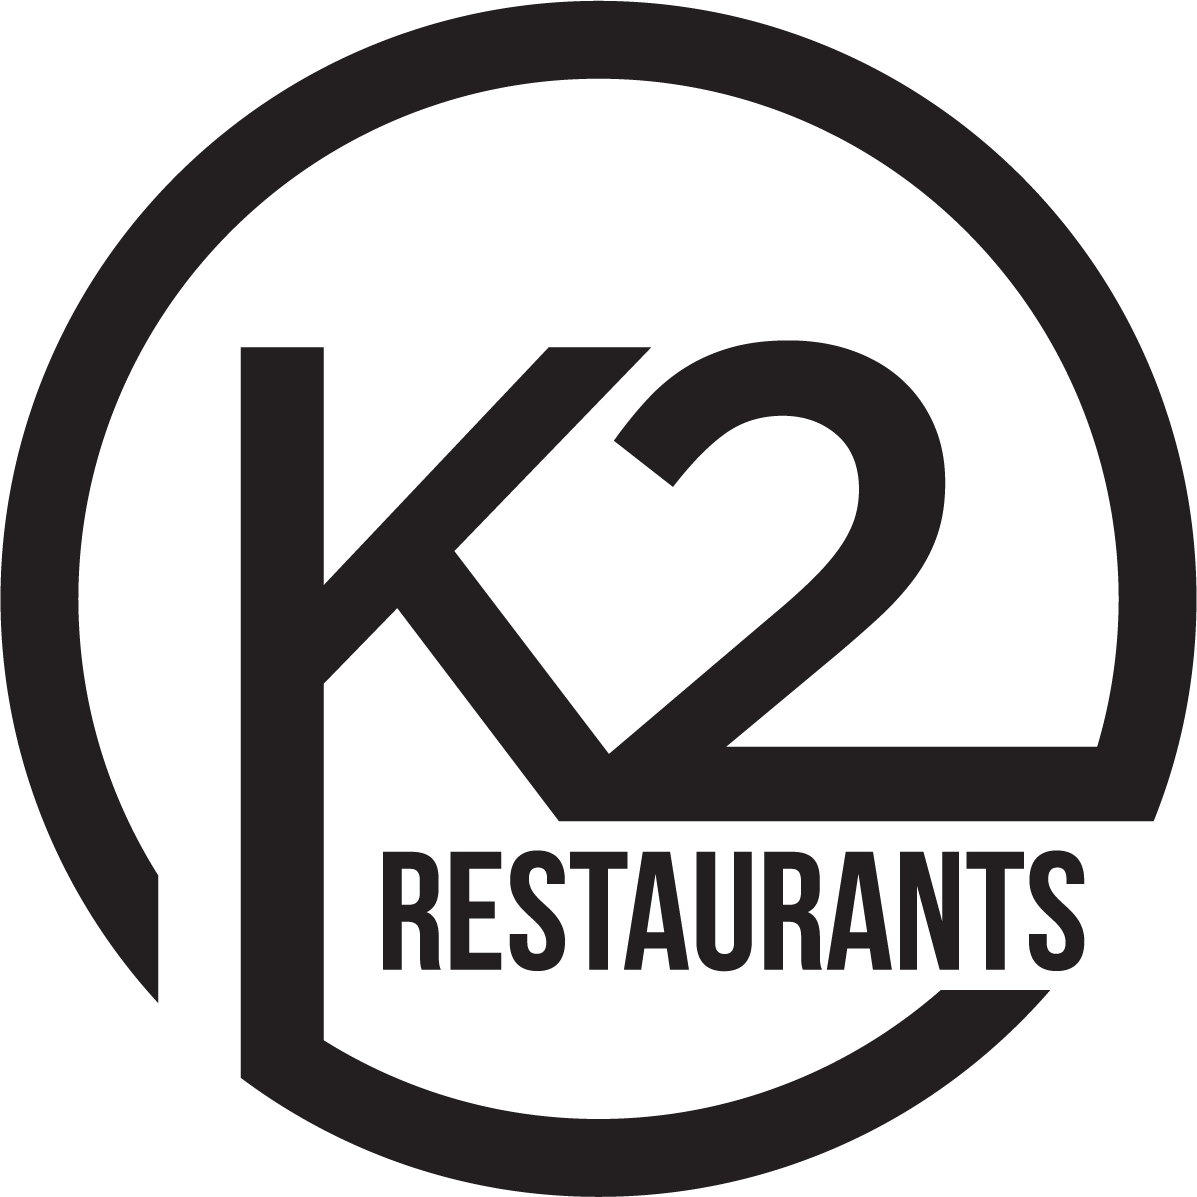 K2 Restaurants Home